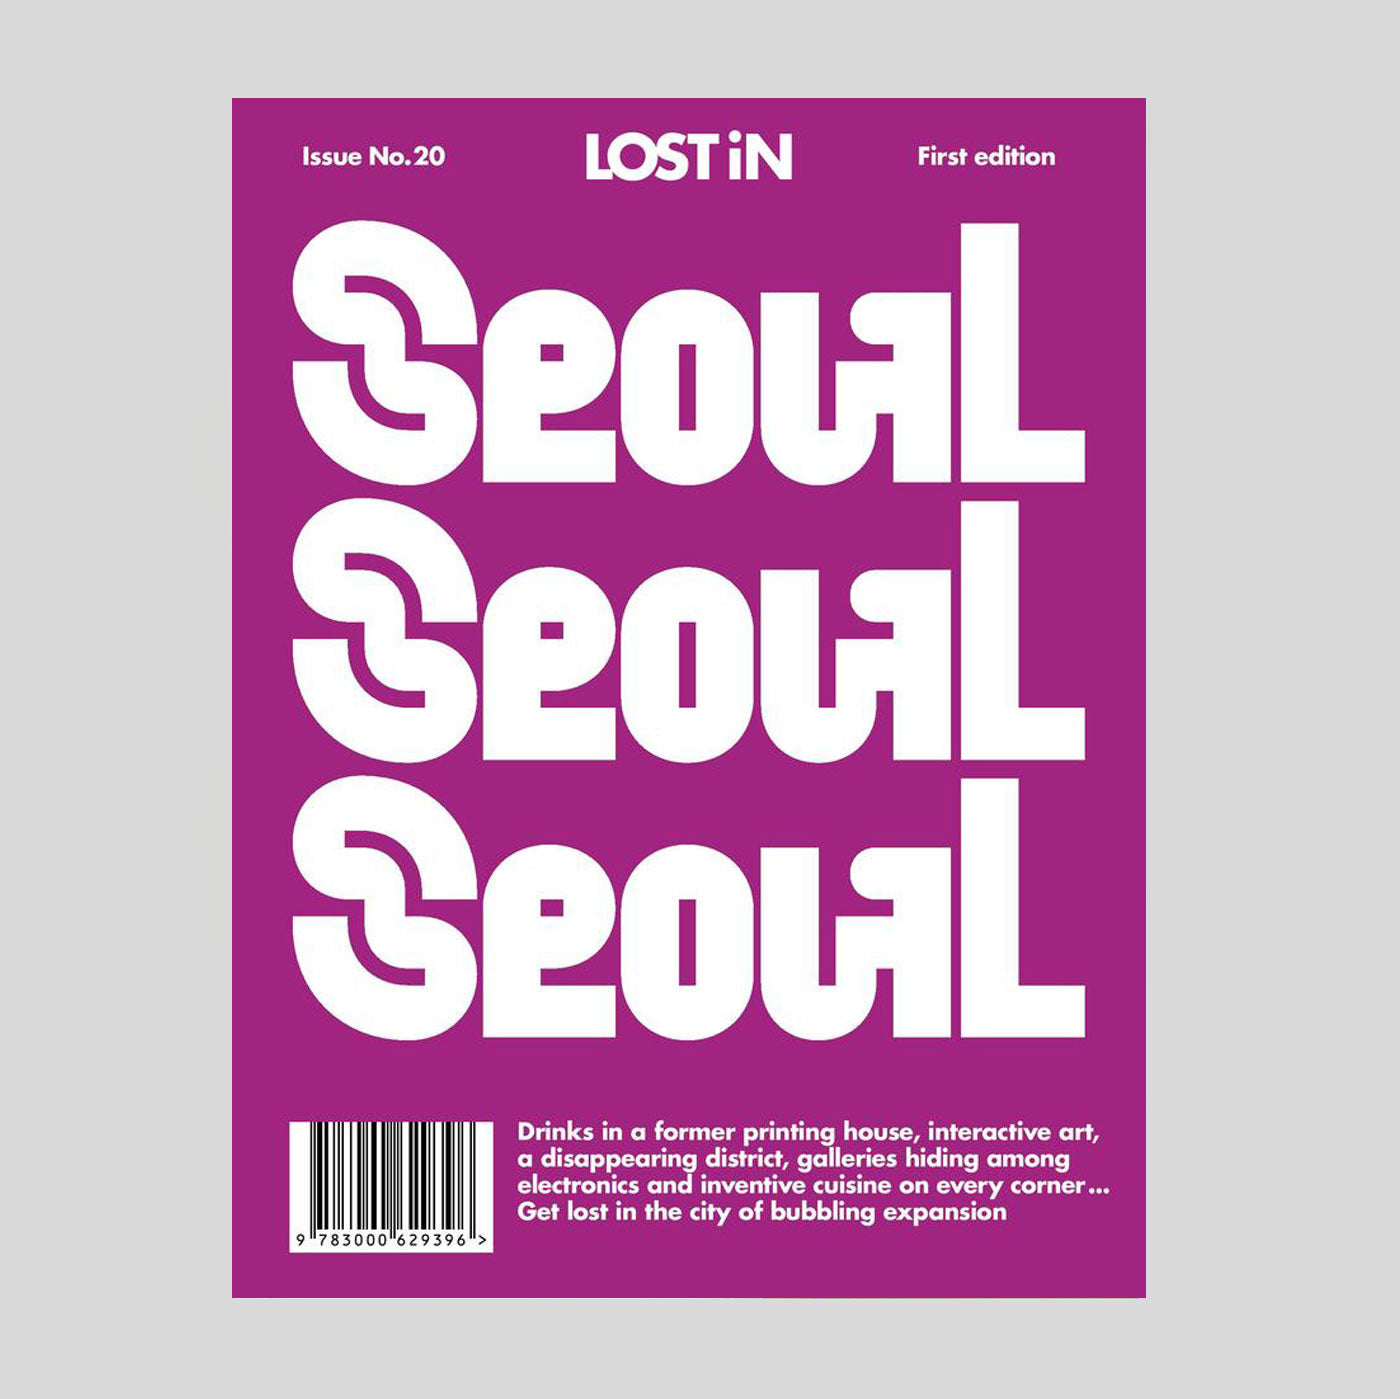 Lost in Seoul - Colours May Vary